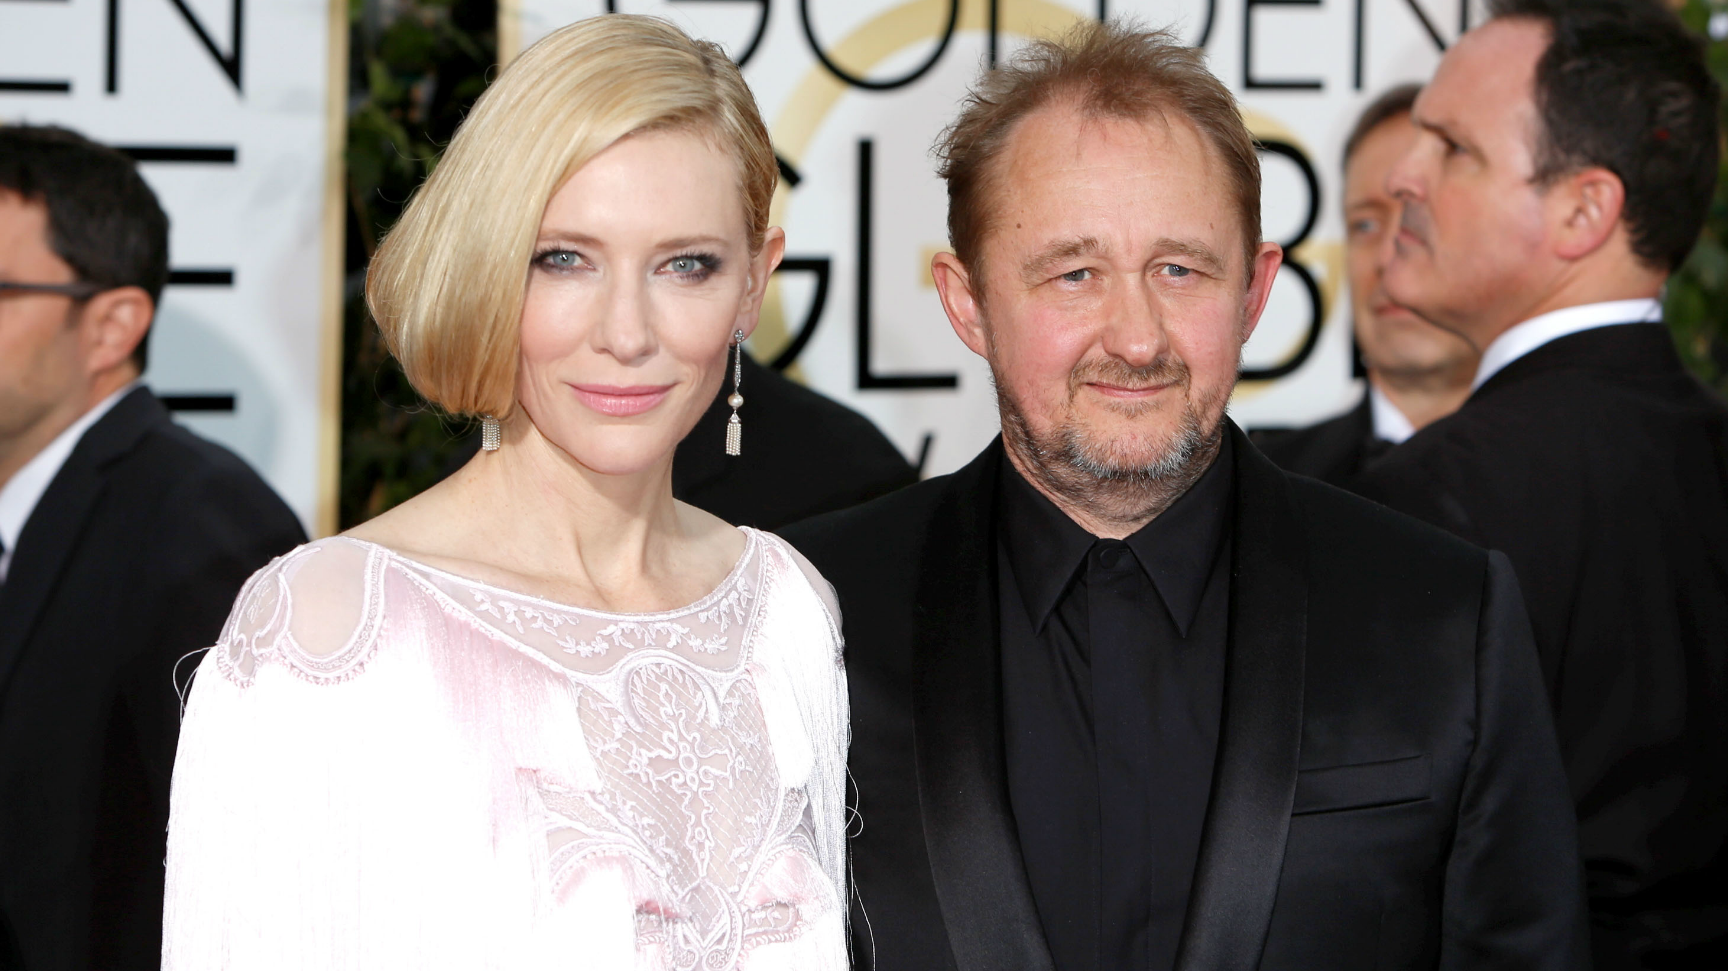 Is Cate Blanchett's husband cheating on her or is he just a